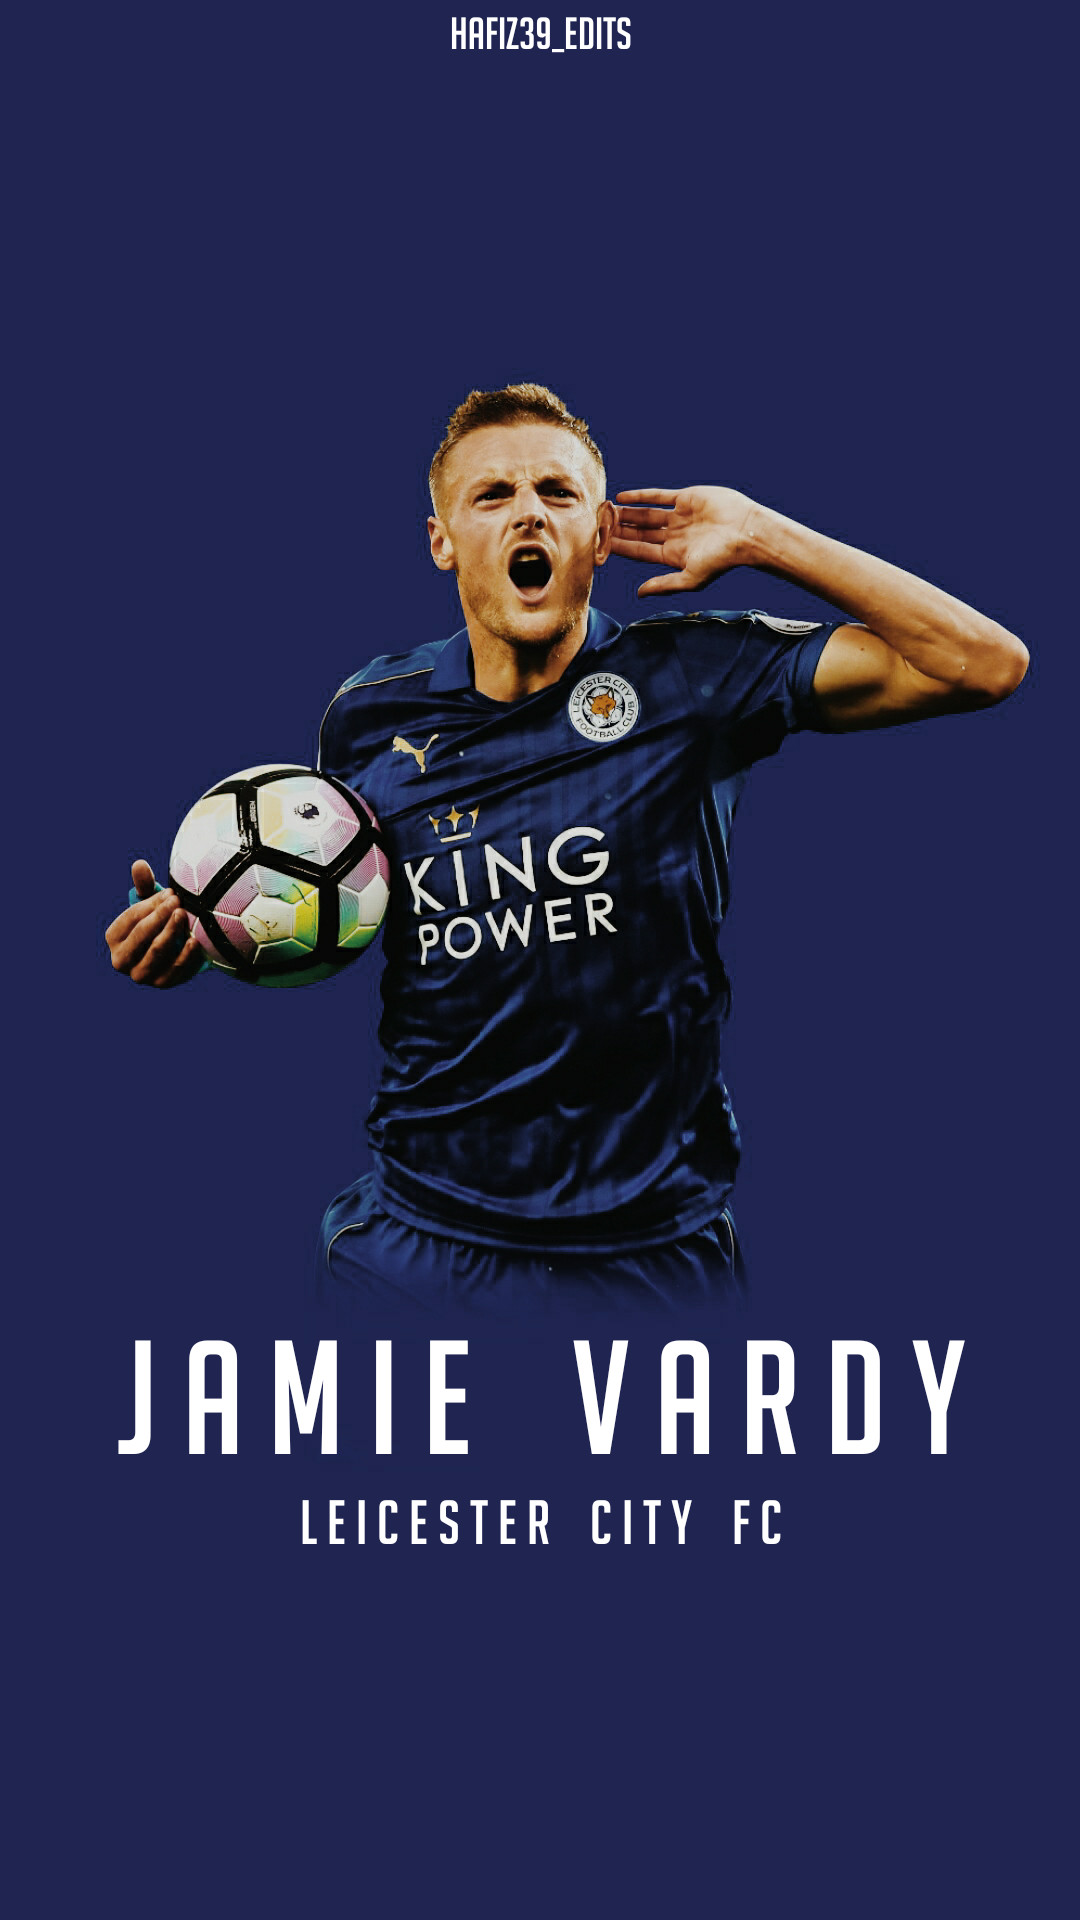 Jamie Vardy Wallpapers 85 images 1080x1920